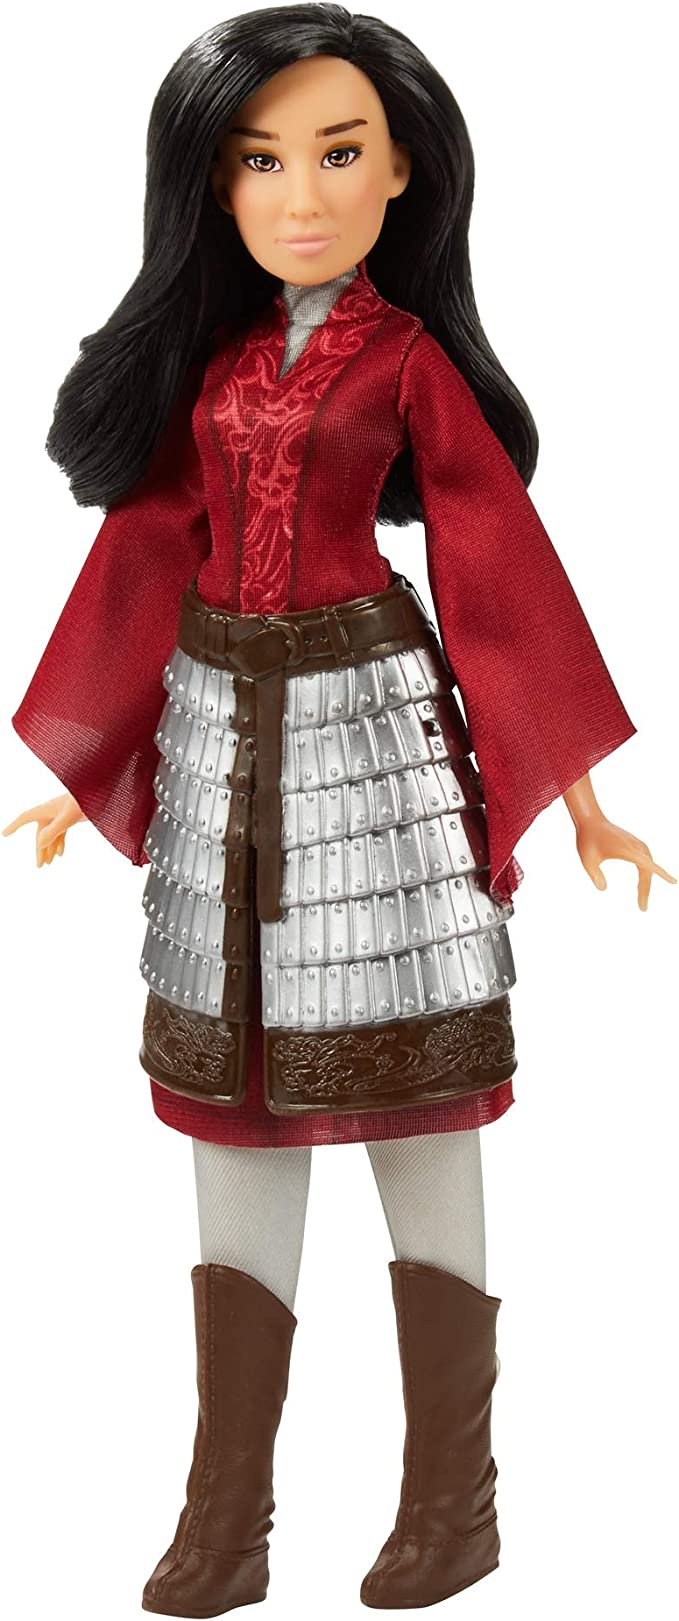 Amazon Com Disney Mulan Fashion Doll With Skirt Armor Shoes Pants And Top Inspired By Disney S Mulan Movie Toy For Kids And Collectors Toys Games